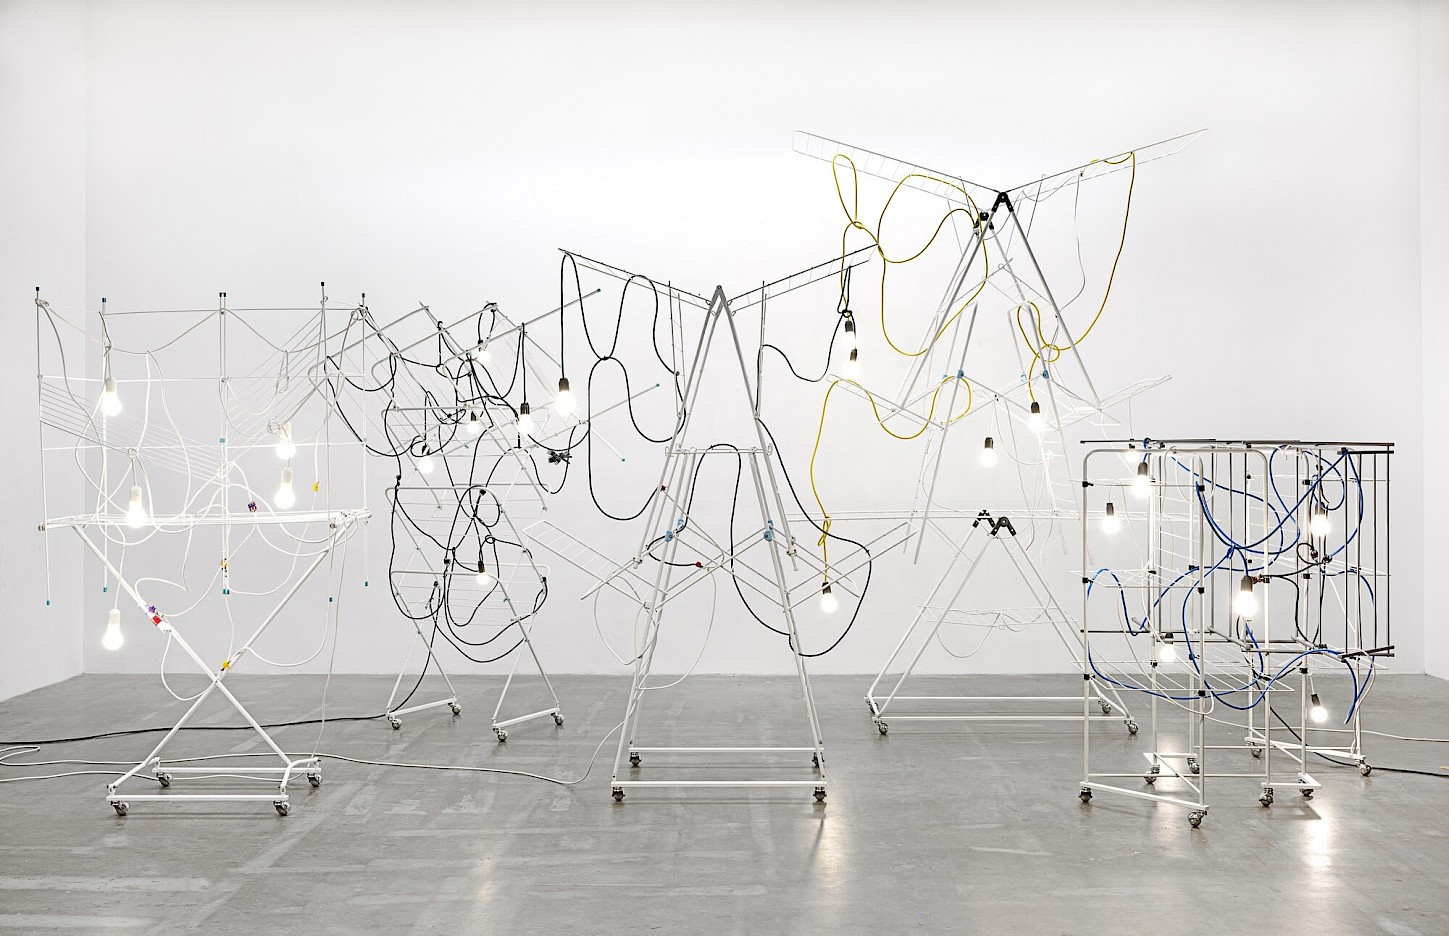 Haegue Yang, Non-Indépliables, nues, 2010/2020. Drying racks, light bulbs, cable, zip ties, terminal strips. Courtesy the artist. Photo: Nick Ash.